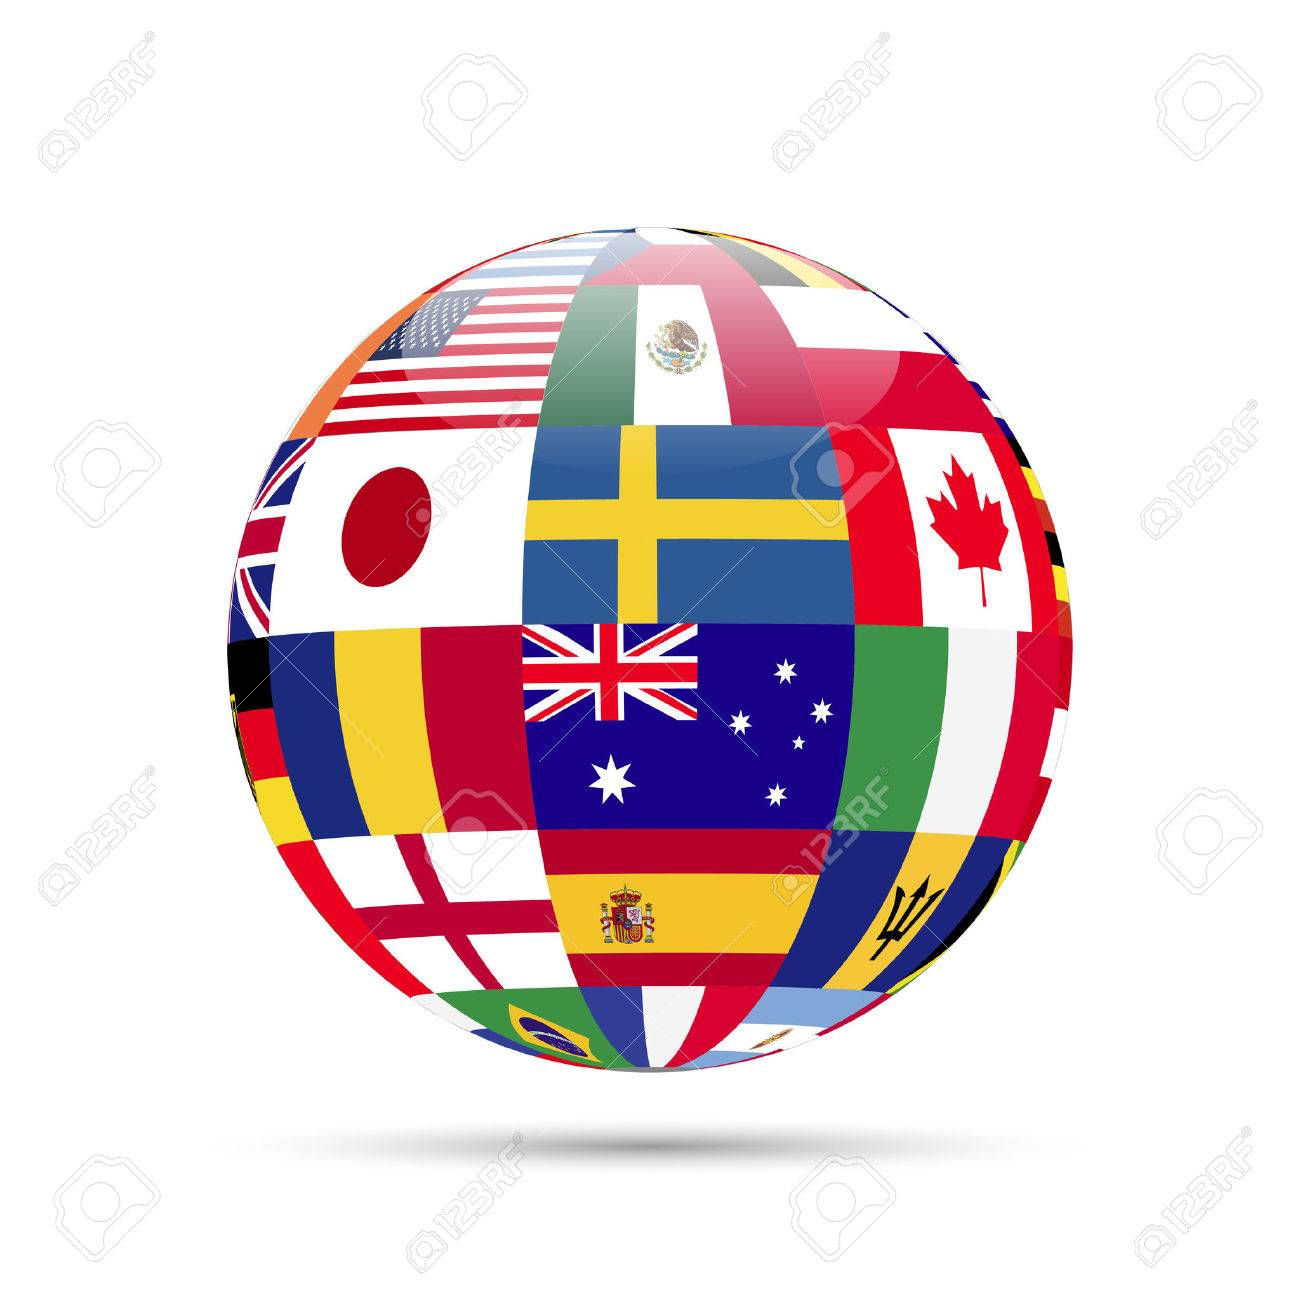 Illustration of a sphere with flags isolated on a white background. - 27194892